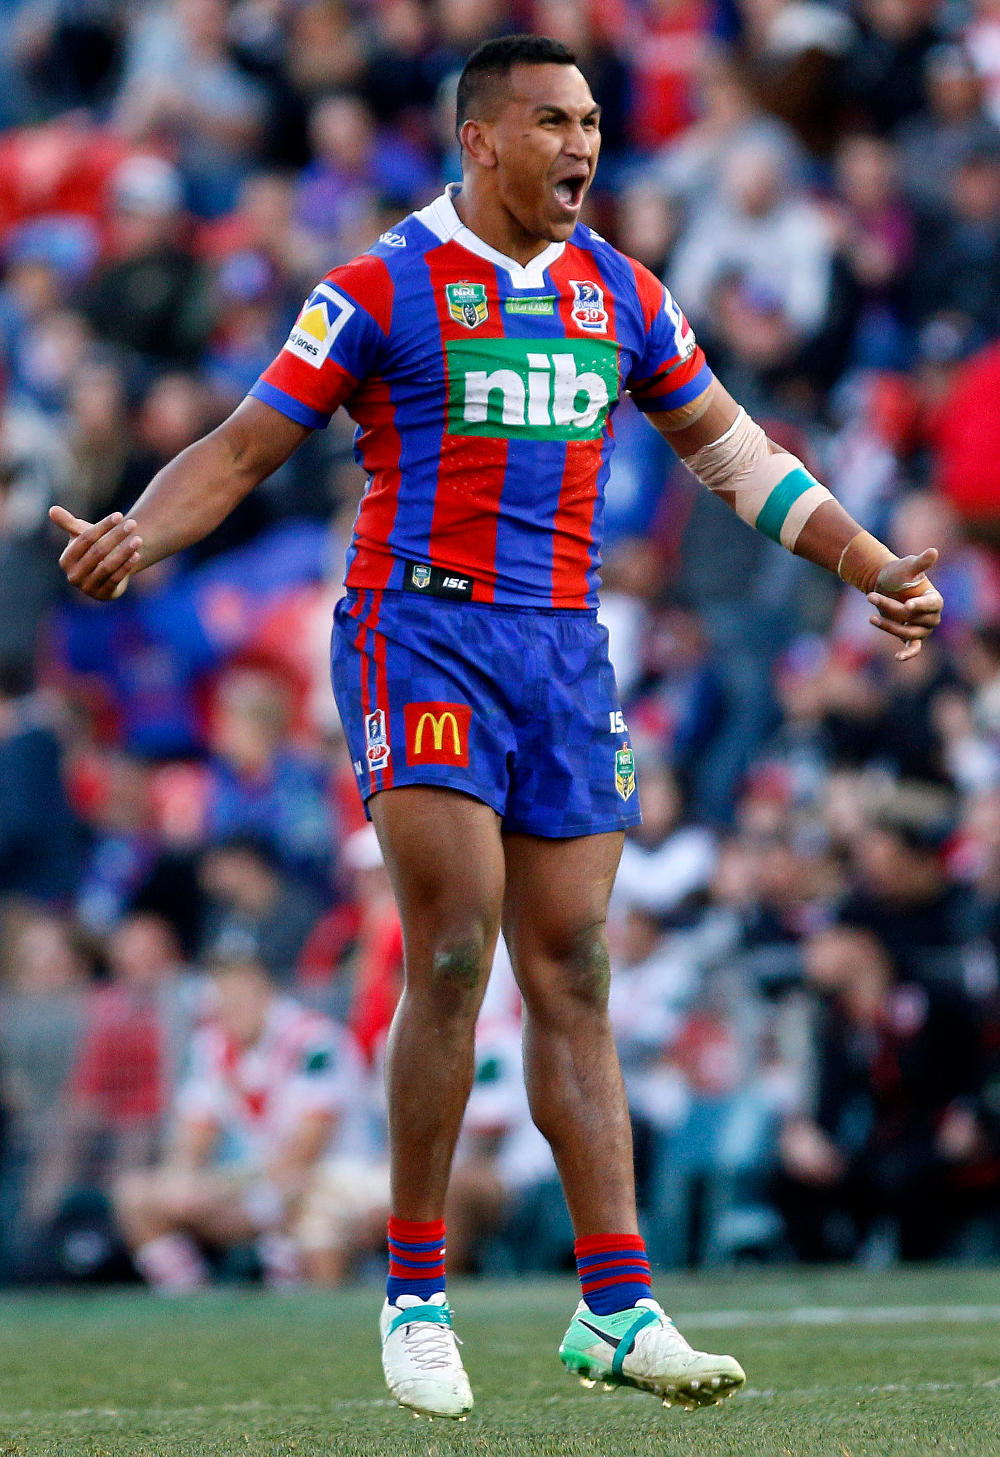 Jacob Saifiti Newcastle Knights NRL Rugby League 2017 tall